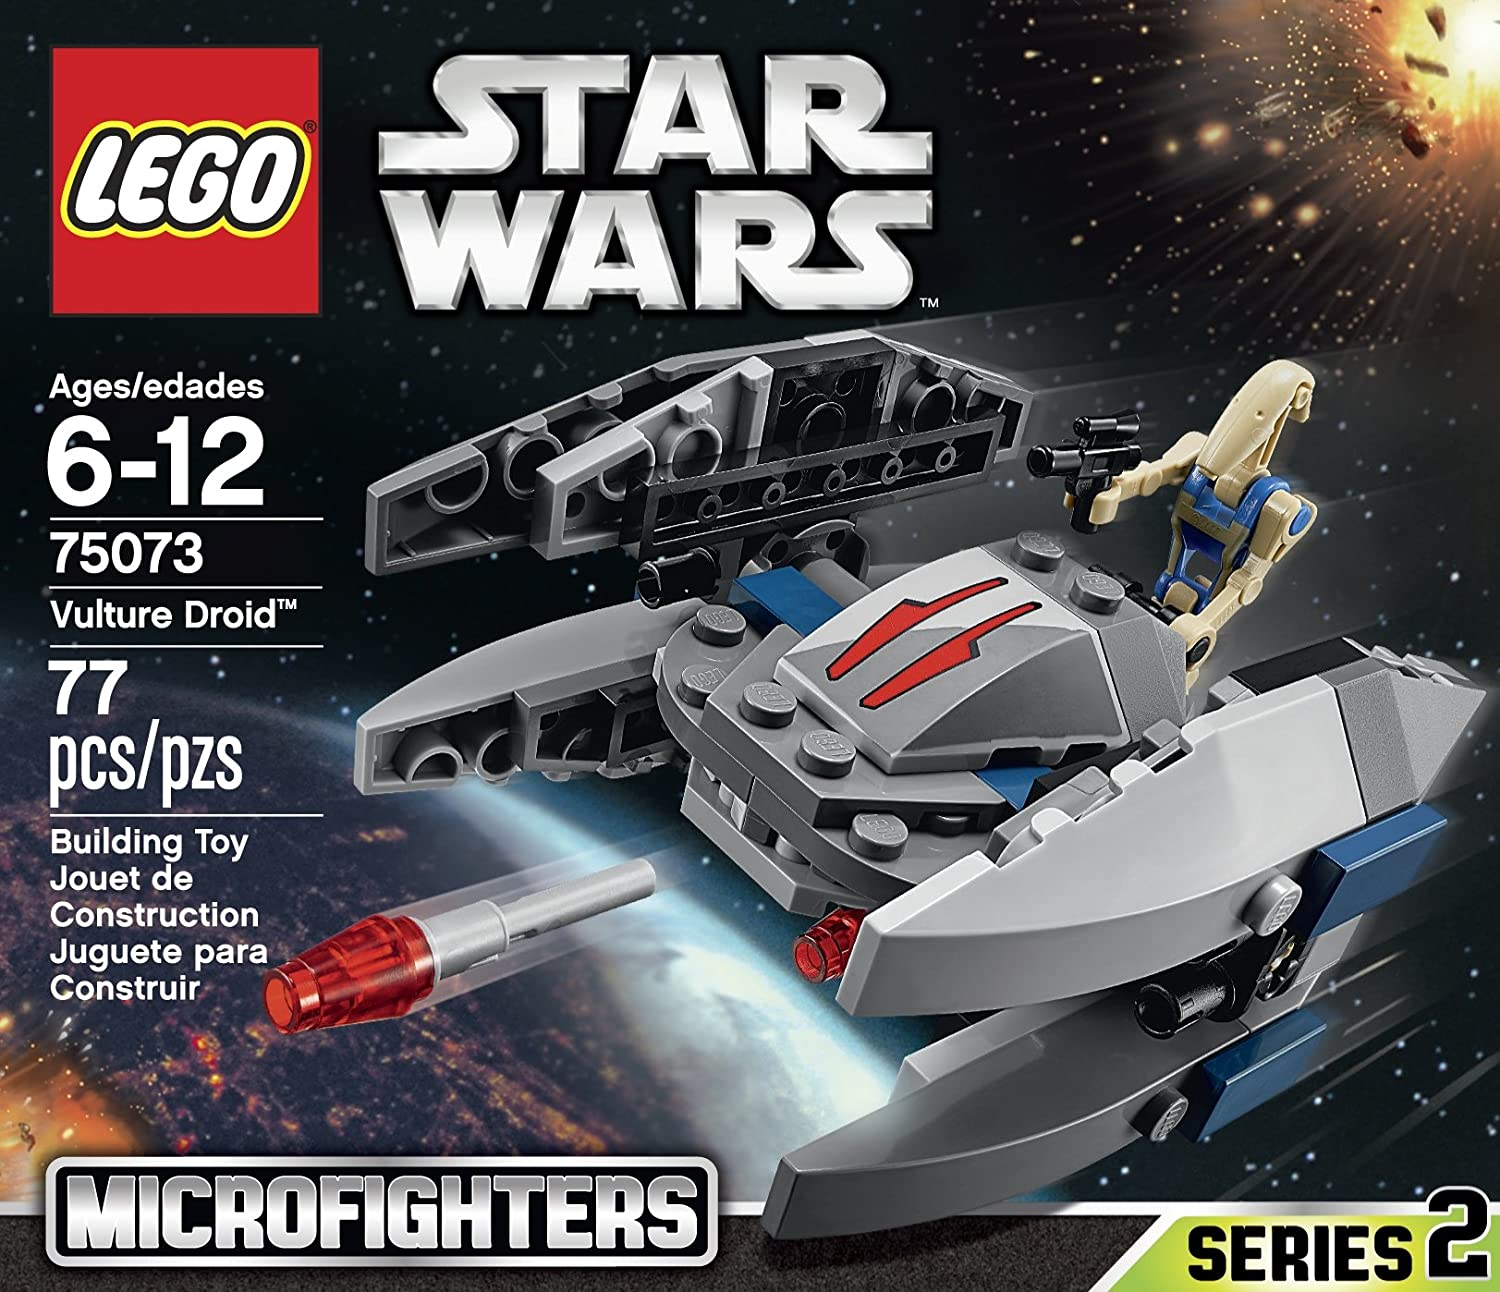 Amazon.com: LEGO, Star Wars microfighters Series 2 Vulture ...